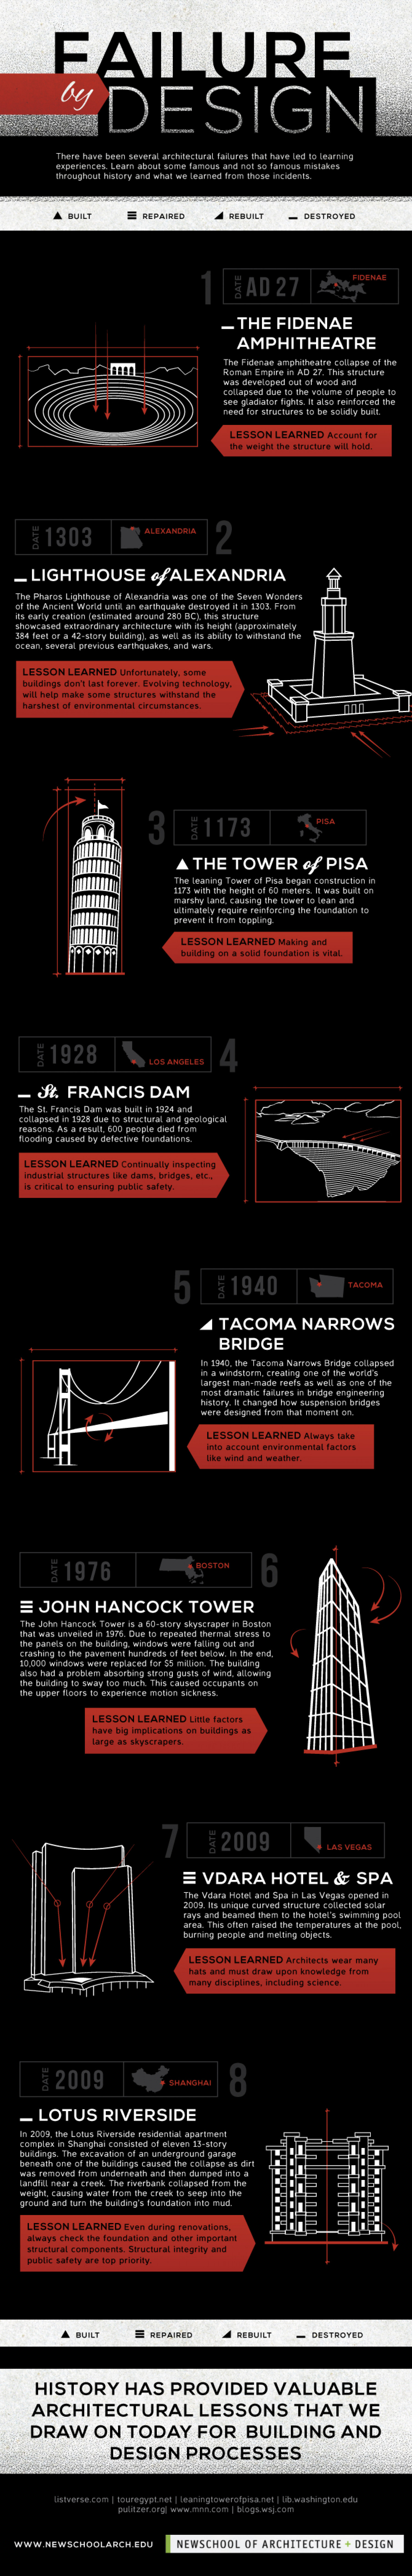 Failure By Design Infographic